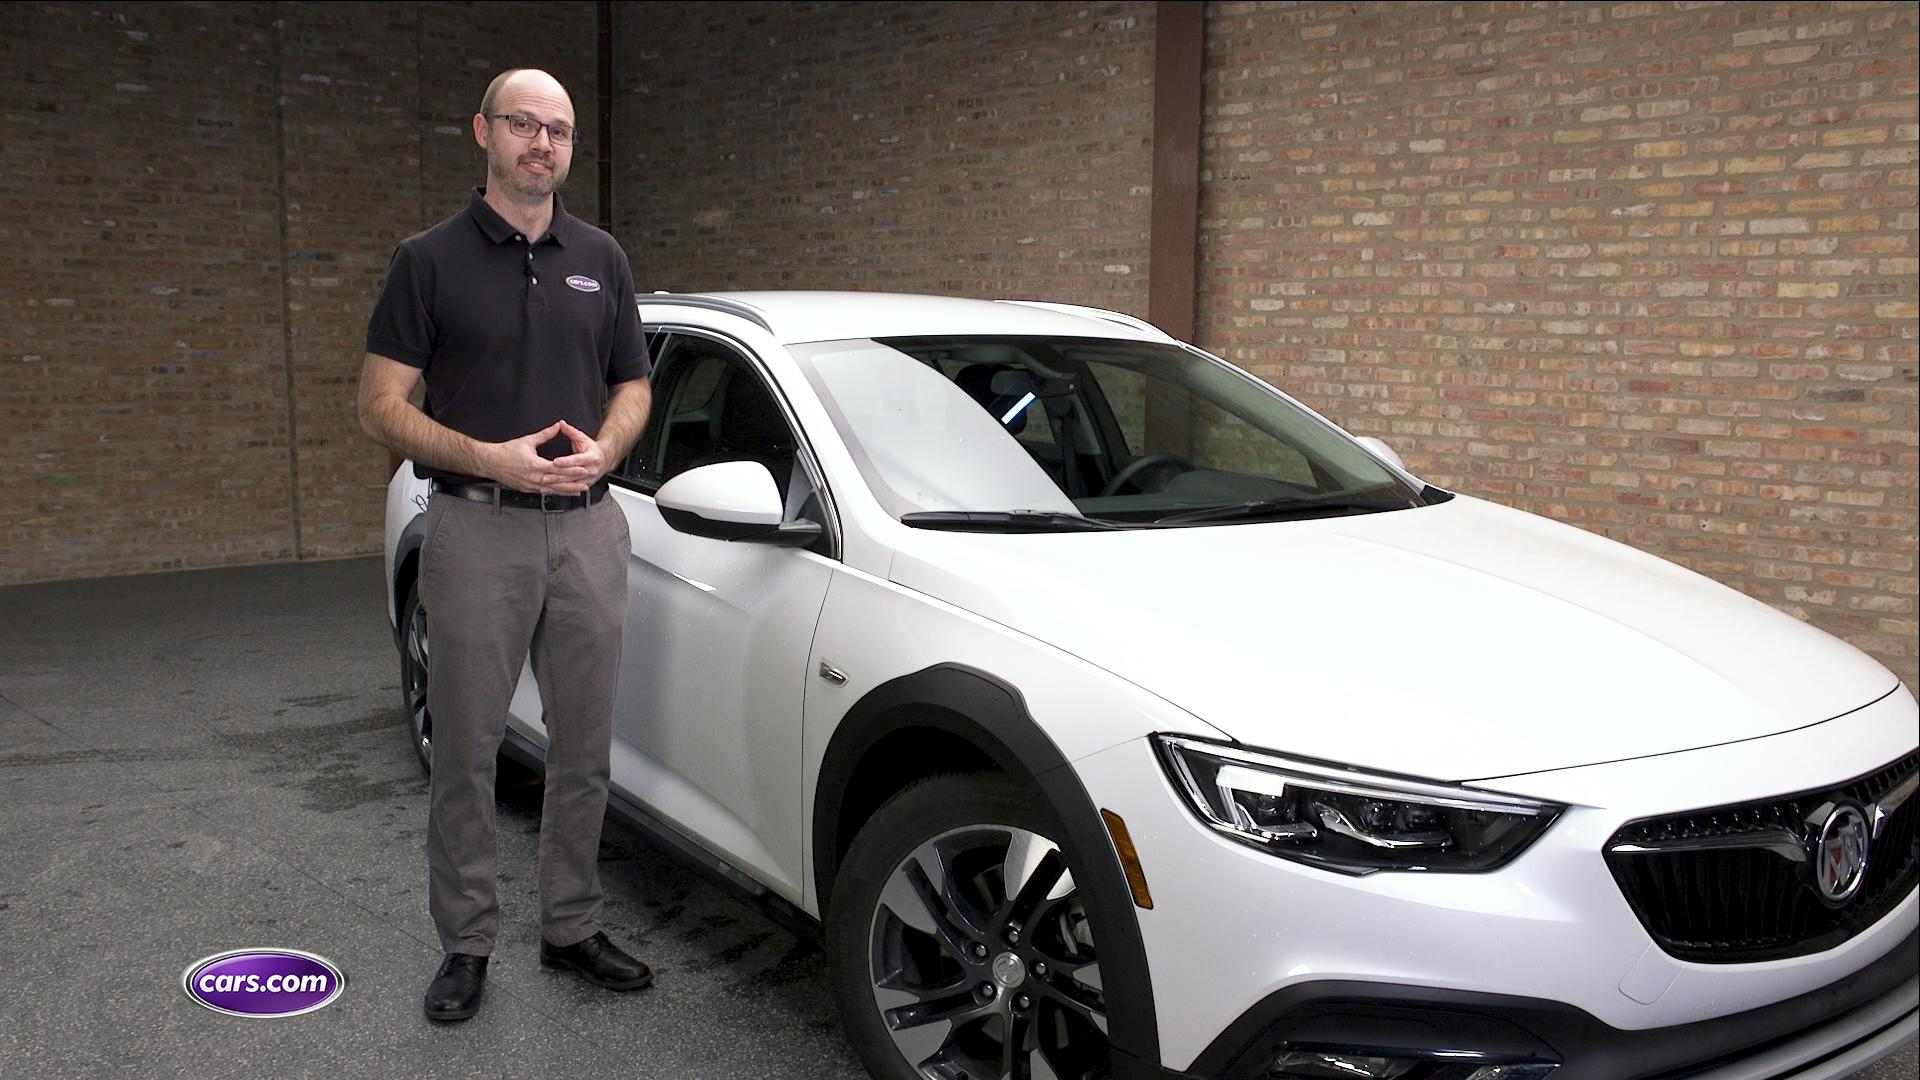 2018 Buick Regal TourX Video: 5 Ways It's Better Than an SUV